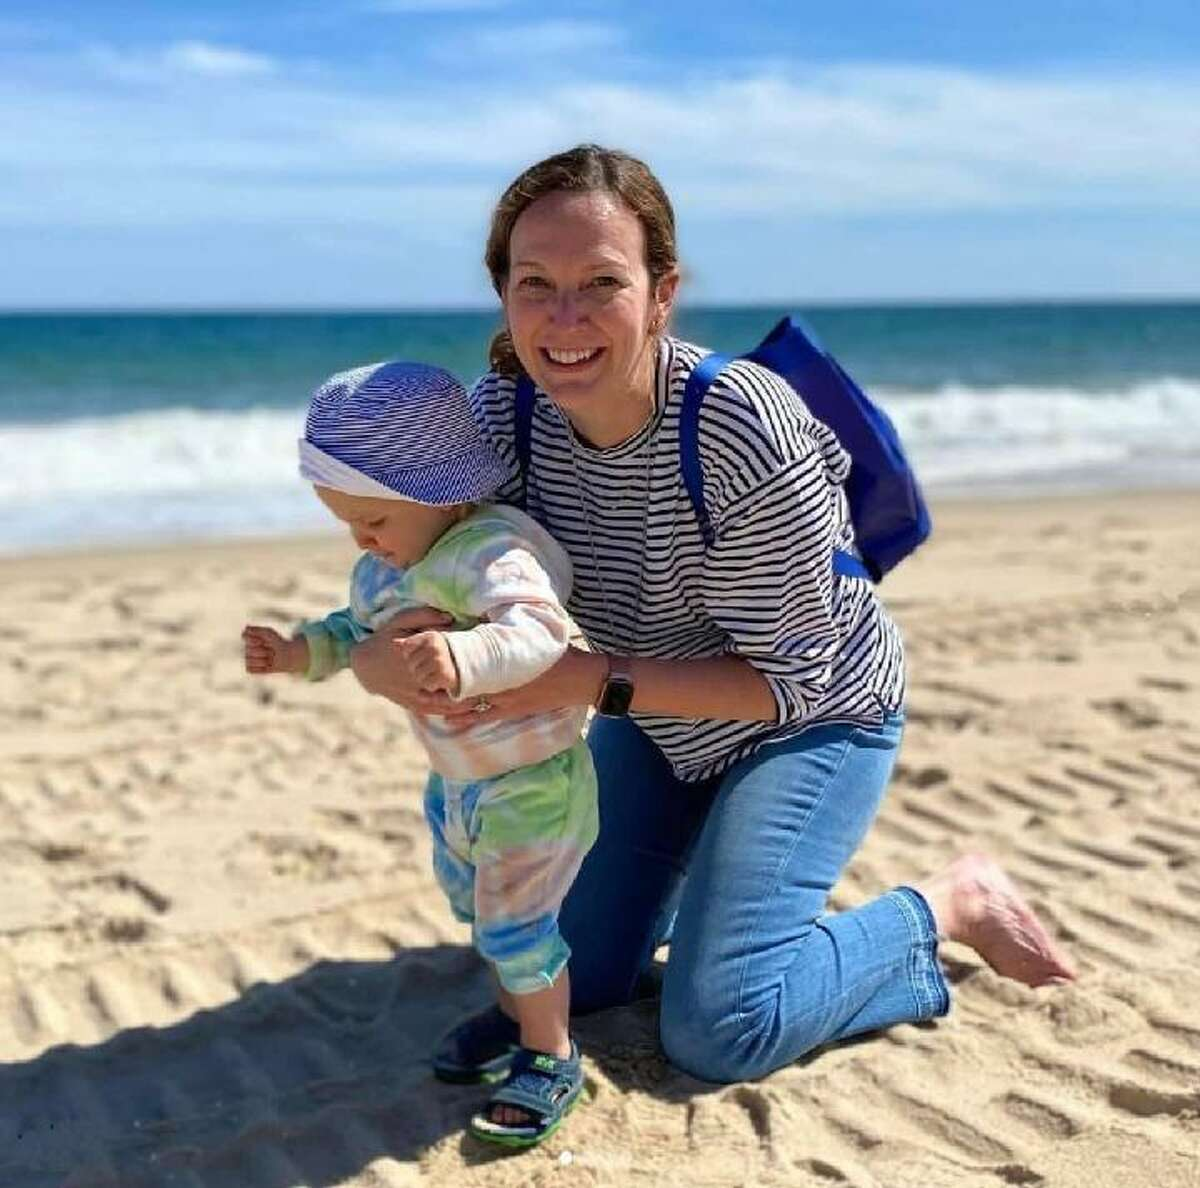 Dr. Courtney Haviland, 33, and her 1-year-old son, Teddy.